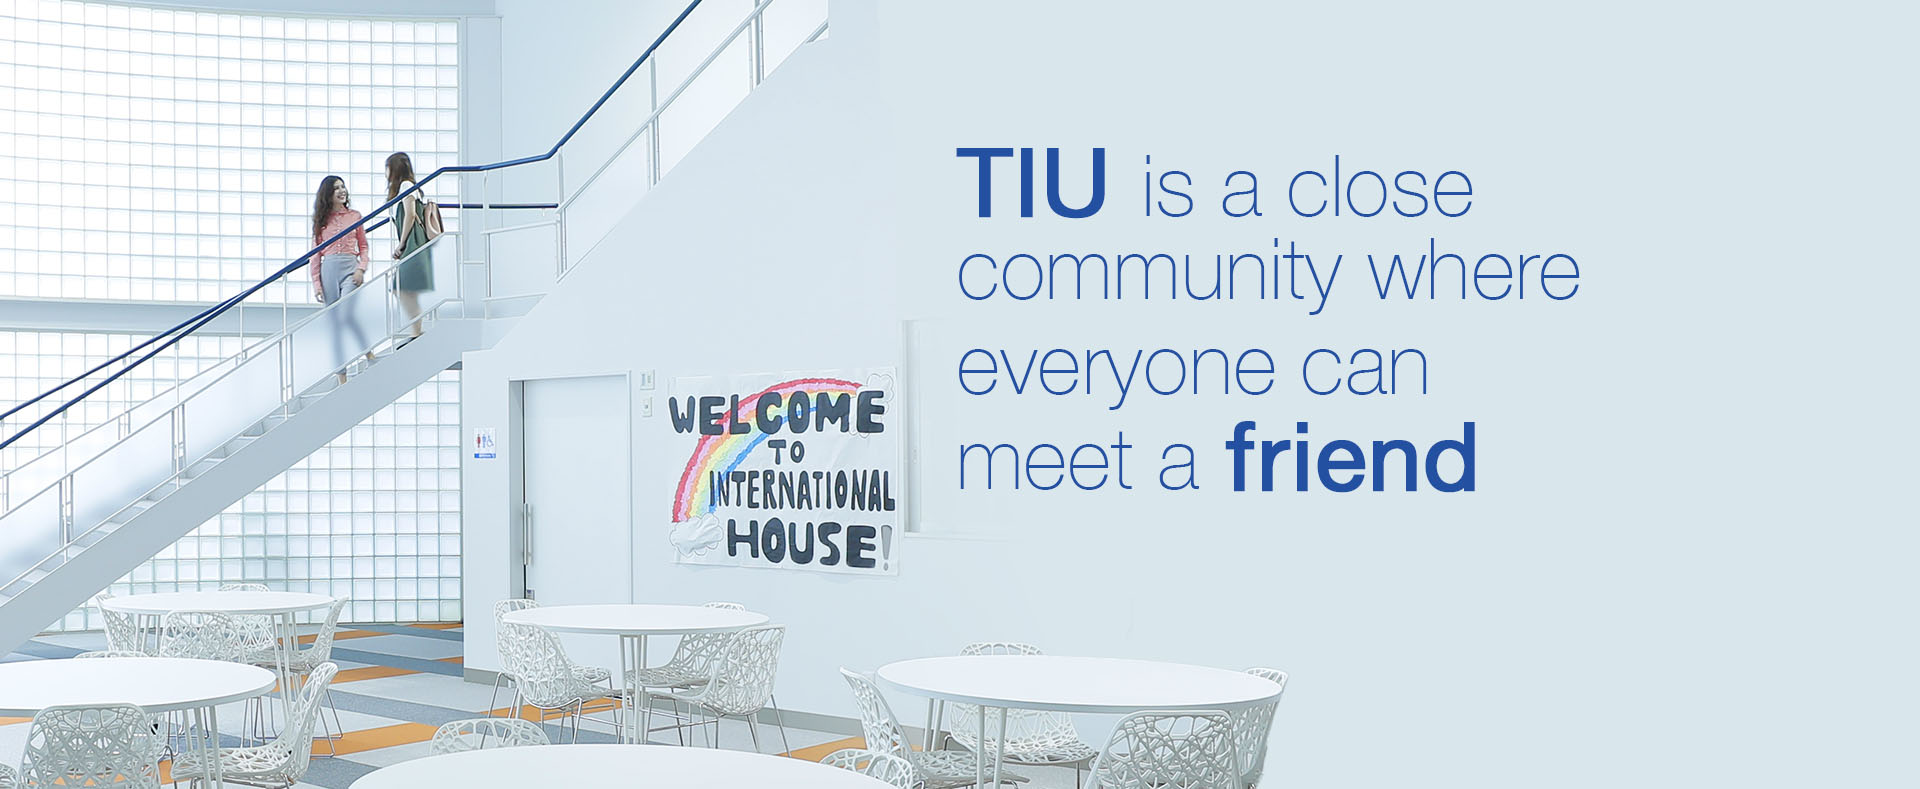 TIU is a close community campus where everyone is a friend.